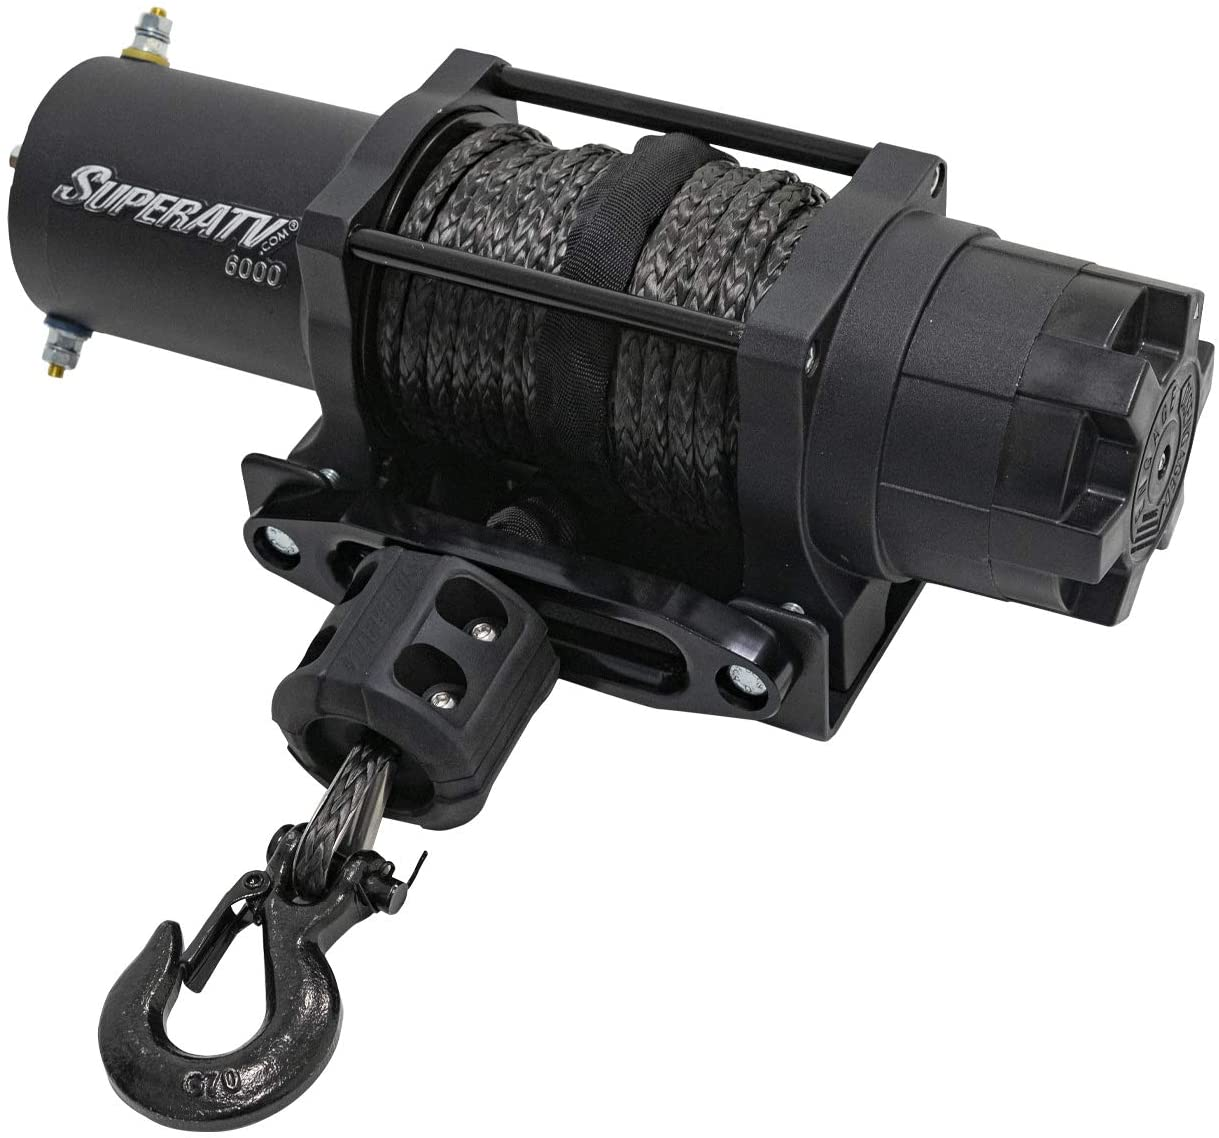 【SuperATV 6000 lb Black Ops UTV Winch Kit】 Includes 50 ft. Synthetic Rope - Wireless Remote - Aluminum Hawse Fairlead - Plus More | 6000Lbs Rated Line Pull and Automatic Shut Off